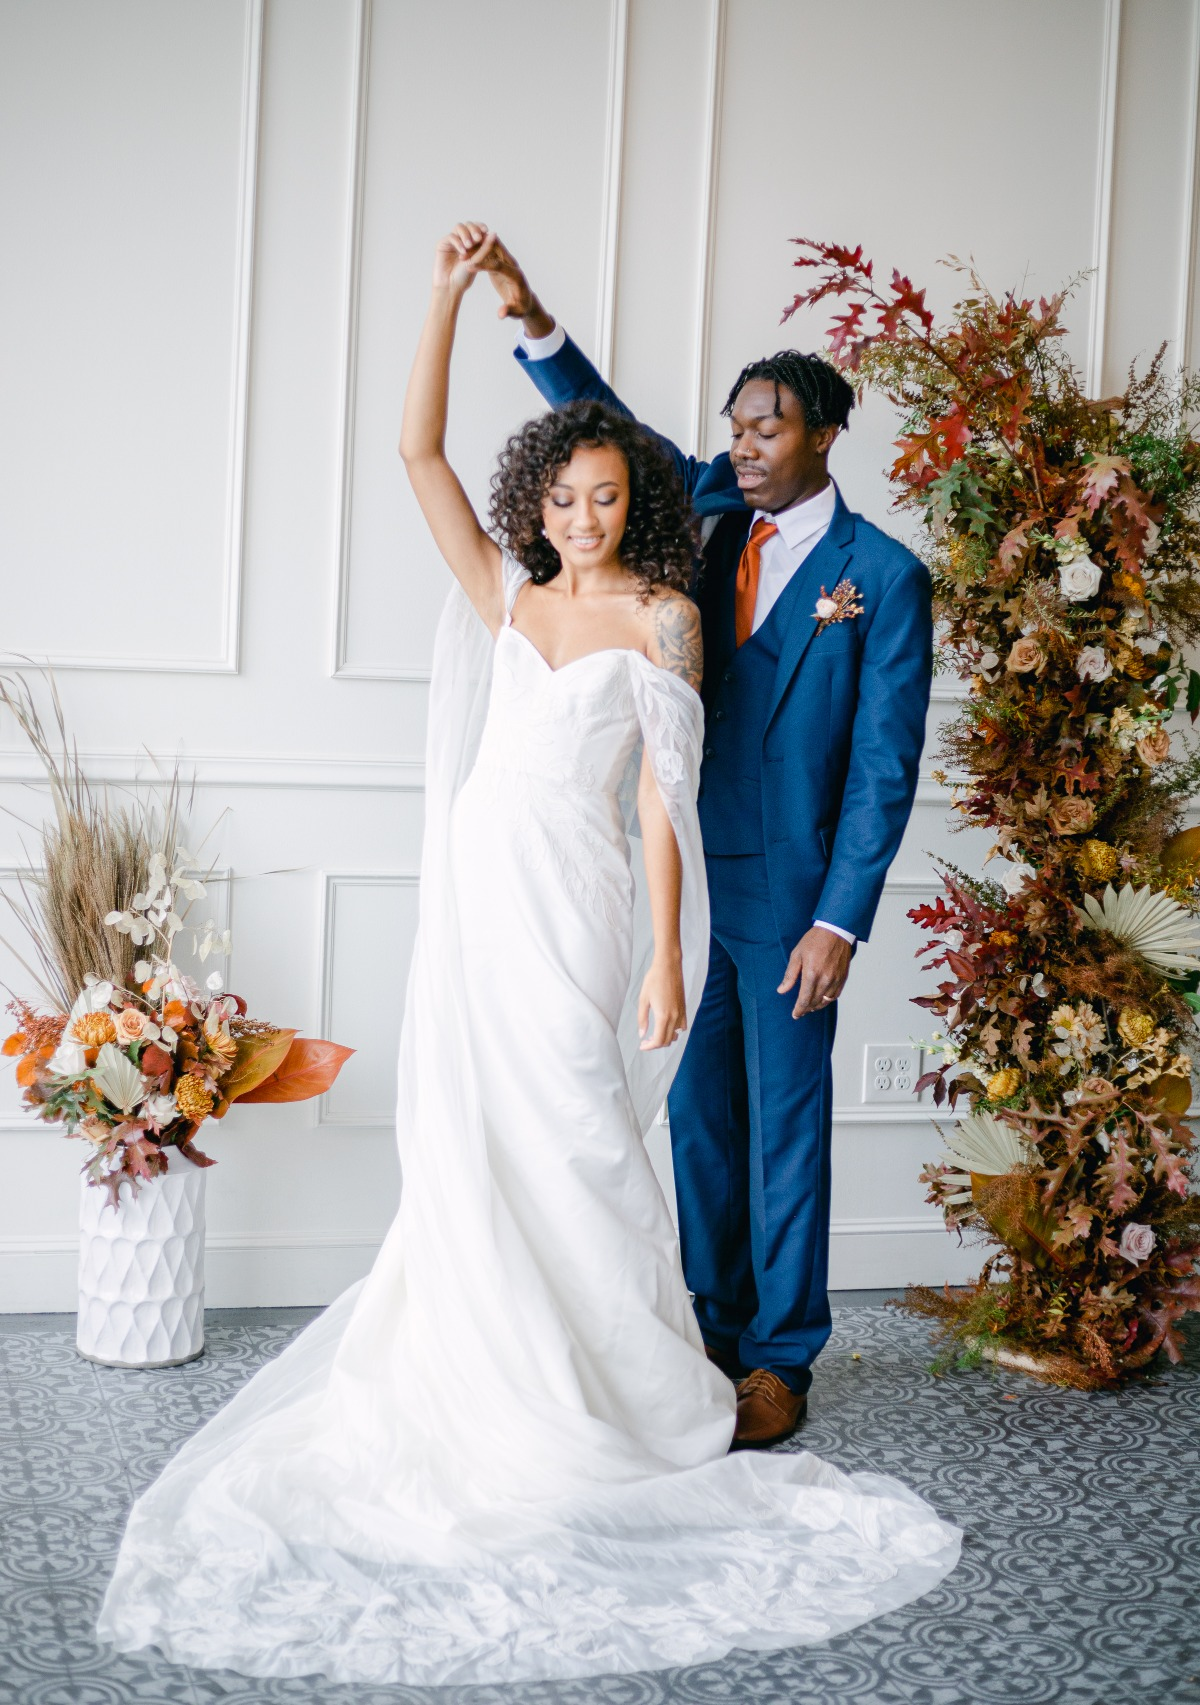 This Modern Fall Wedding Inspiration In Portland Brings Terracotta Blue to the Table[scape]